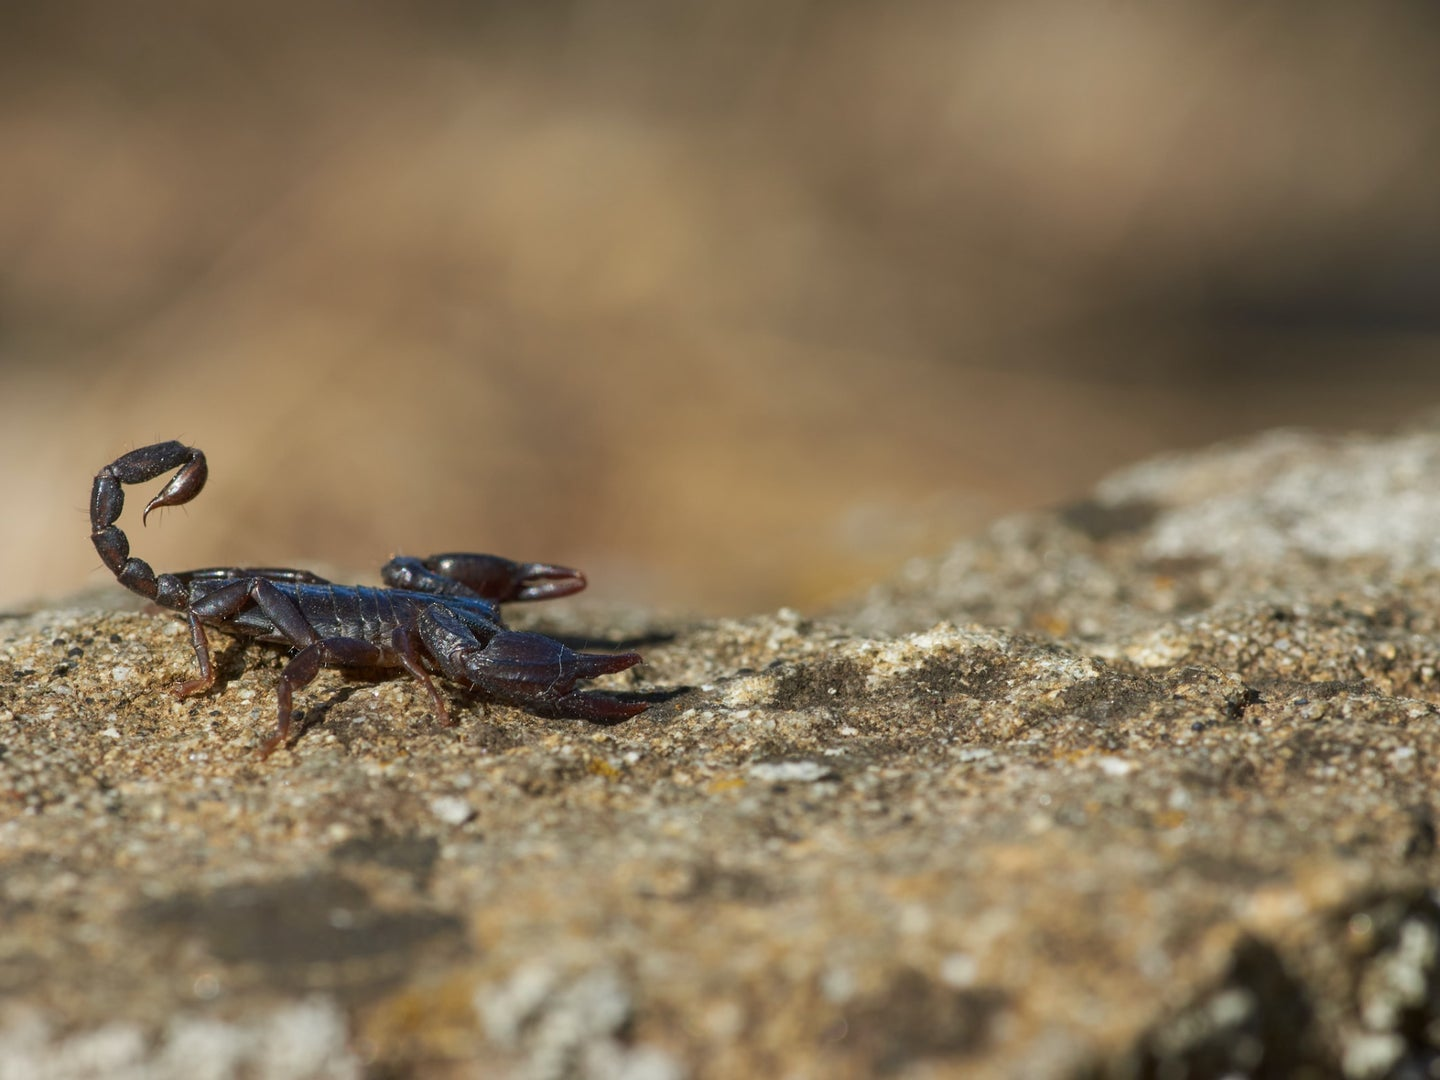 A brown scorpion on a light brown rock during the daytime.